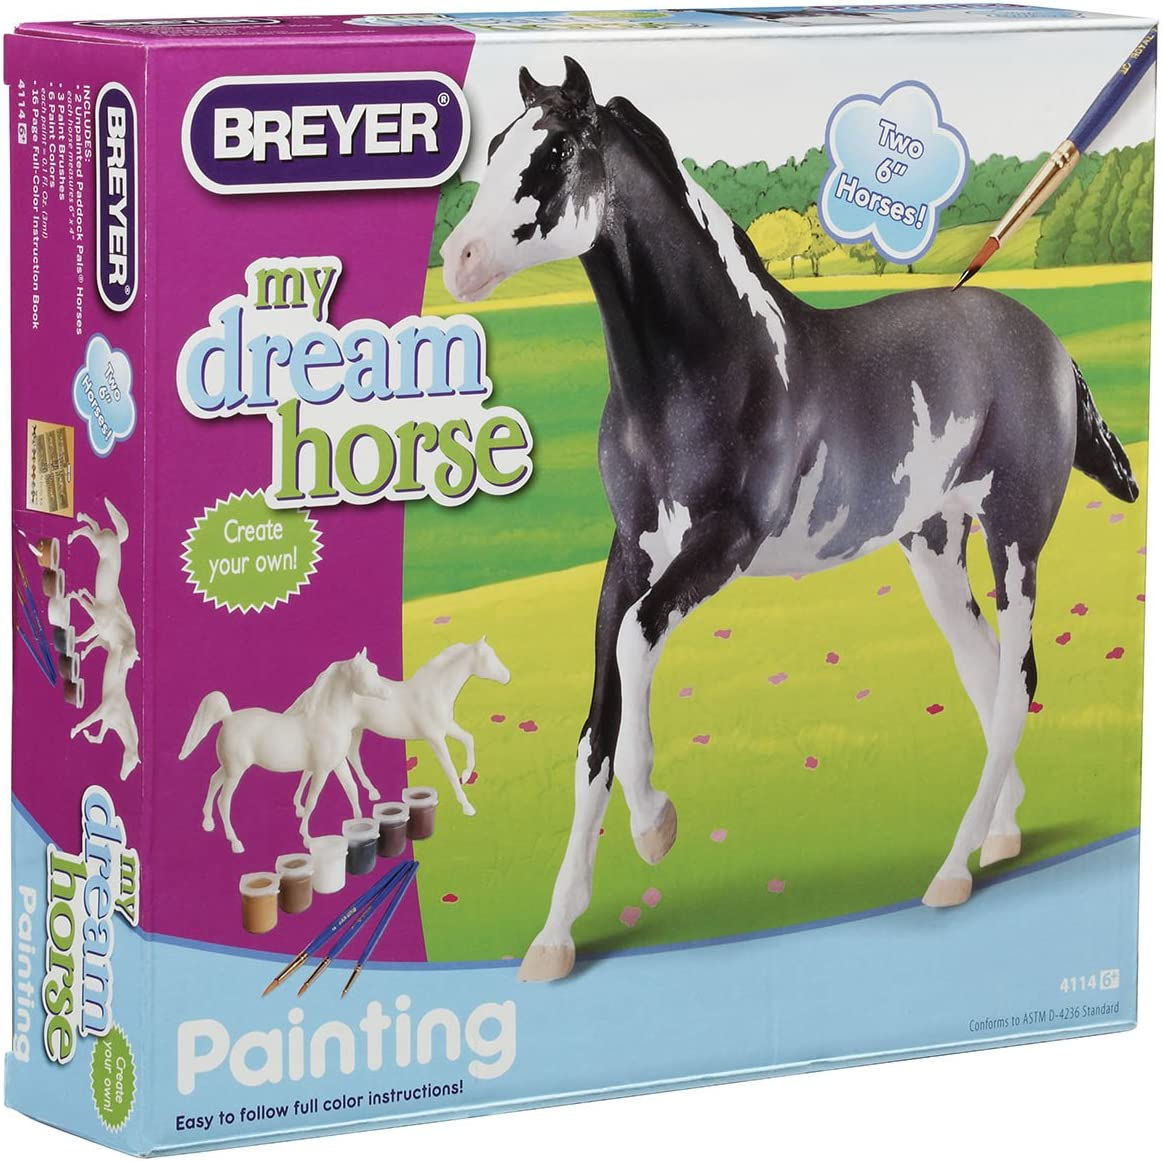 Bundle of 4 Horses Unpainted Breyer Stablemate Model Horses New in pack